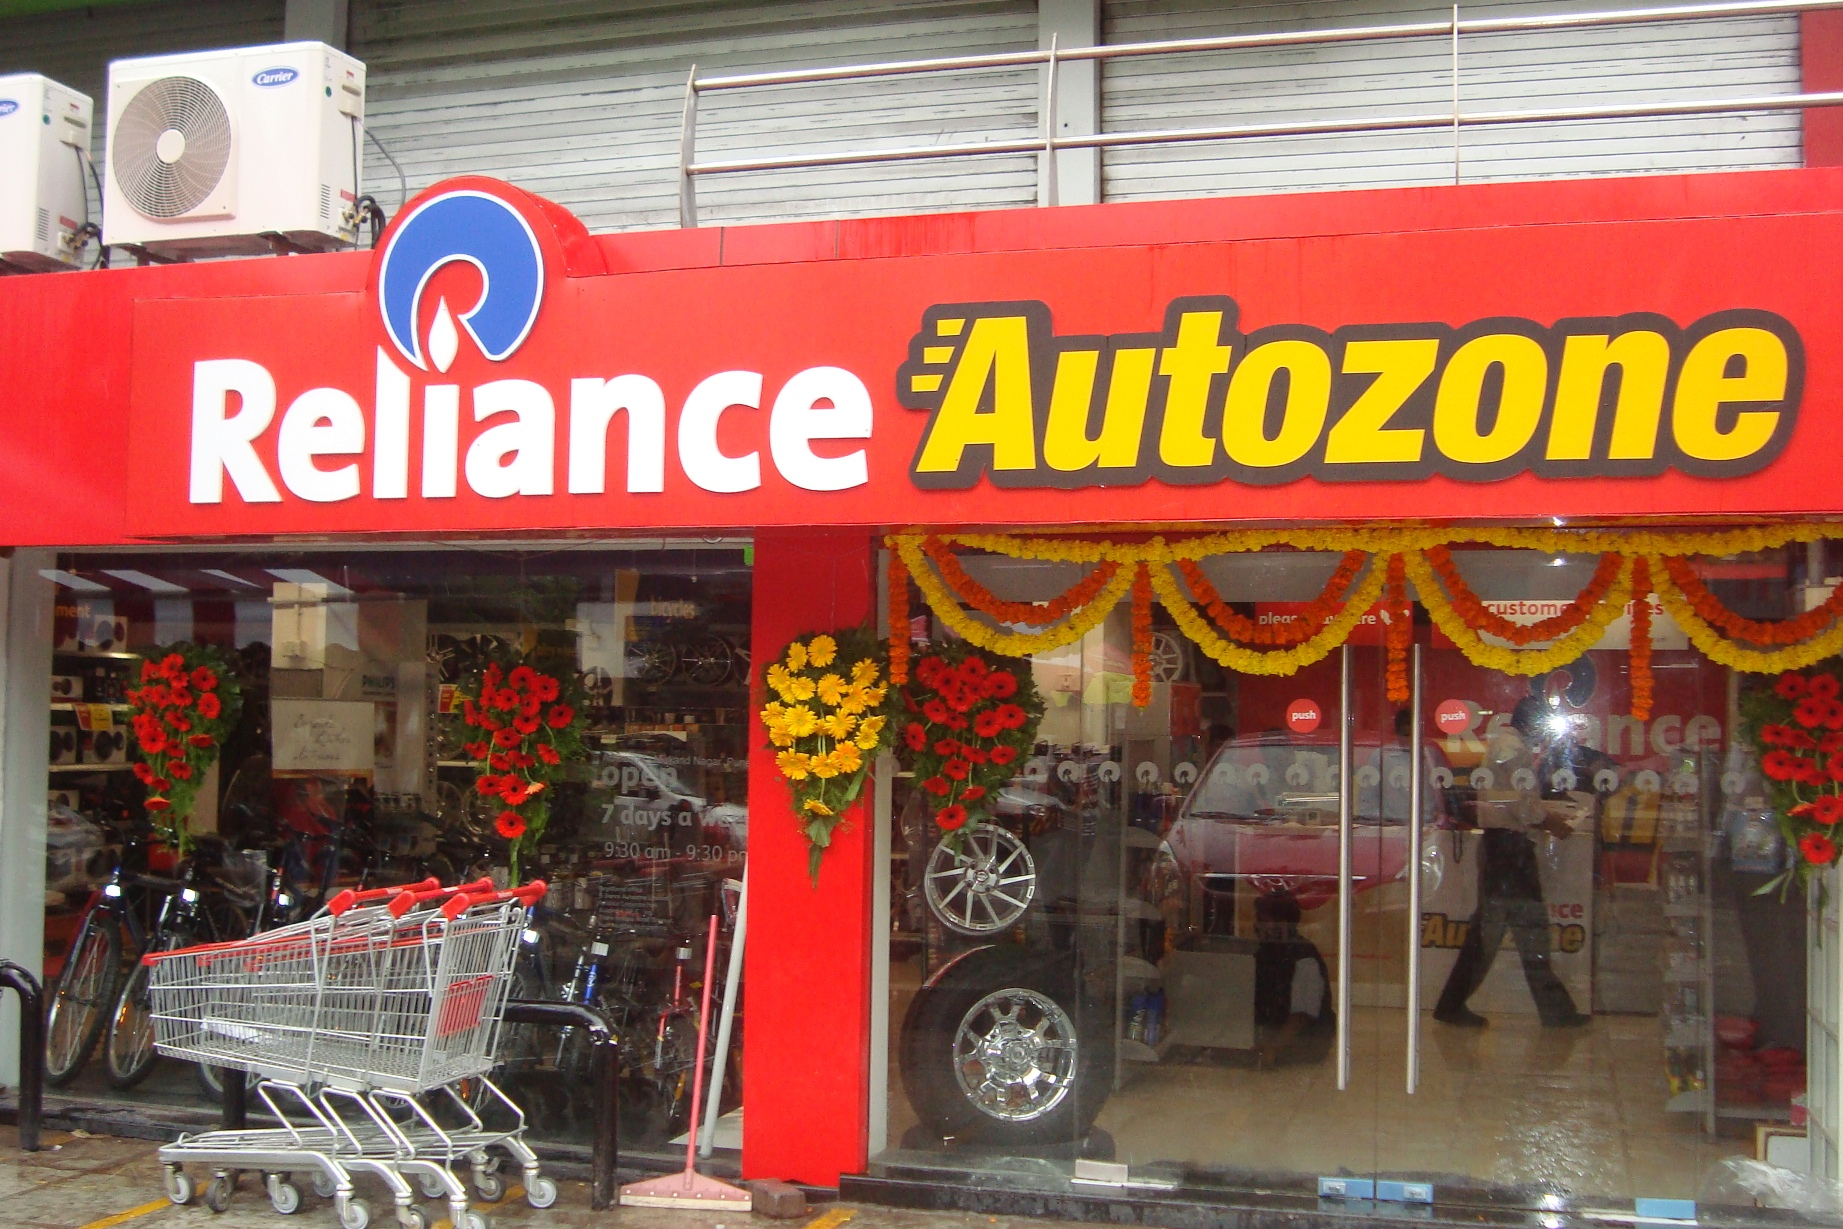 RELIANCE AUTOZONE   GURGAON Photos Images and Wallpapers 1843x1229